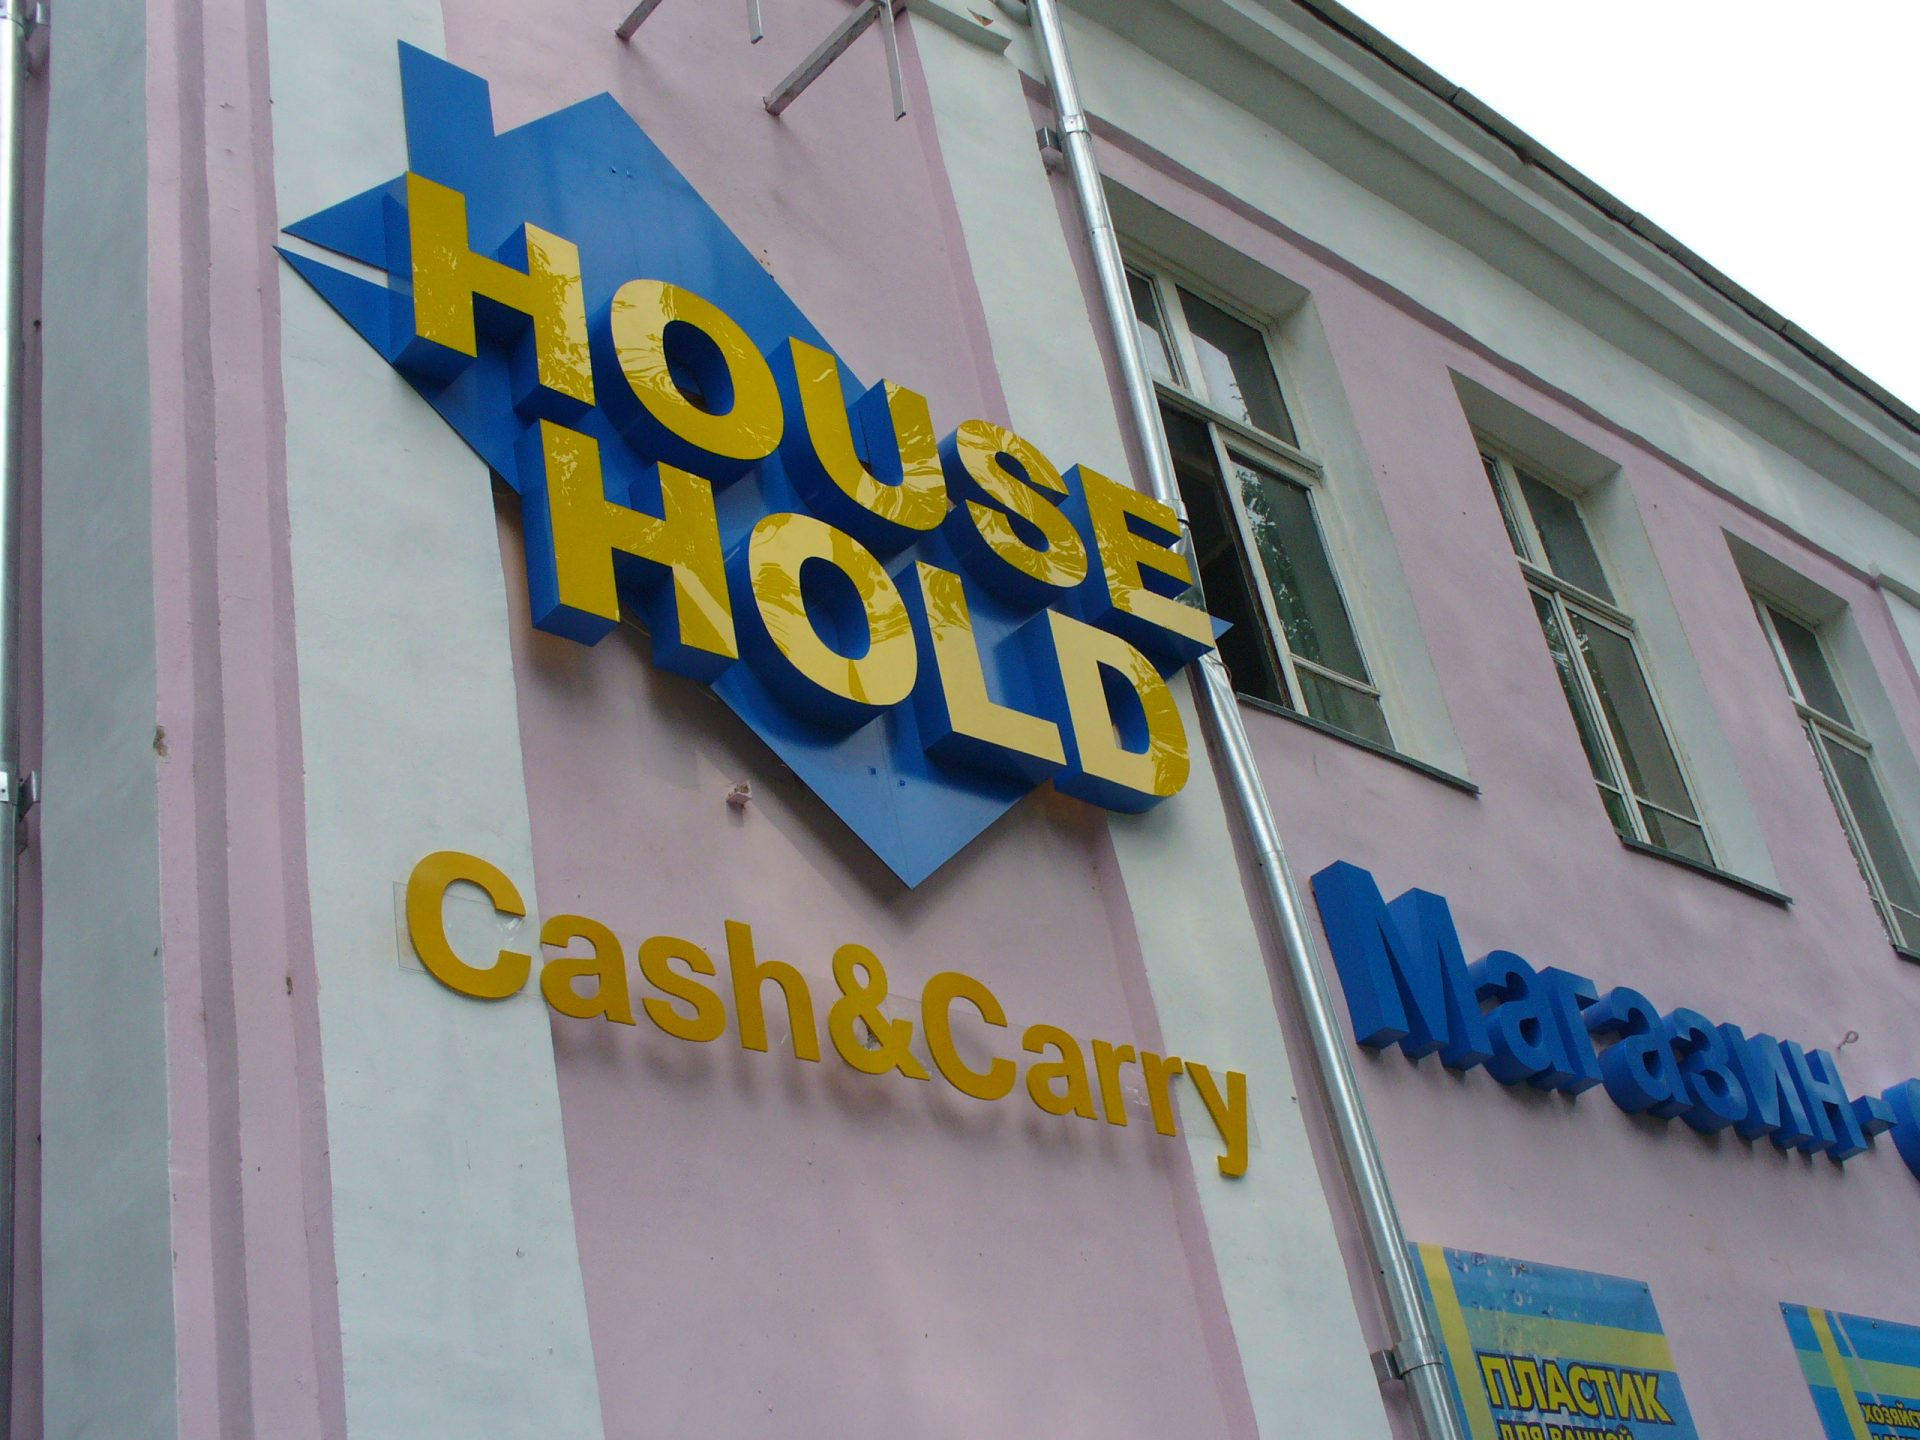 House Hold Cash & Carry, магазин